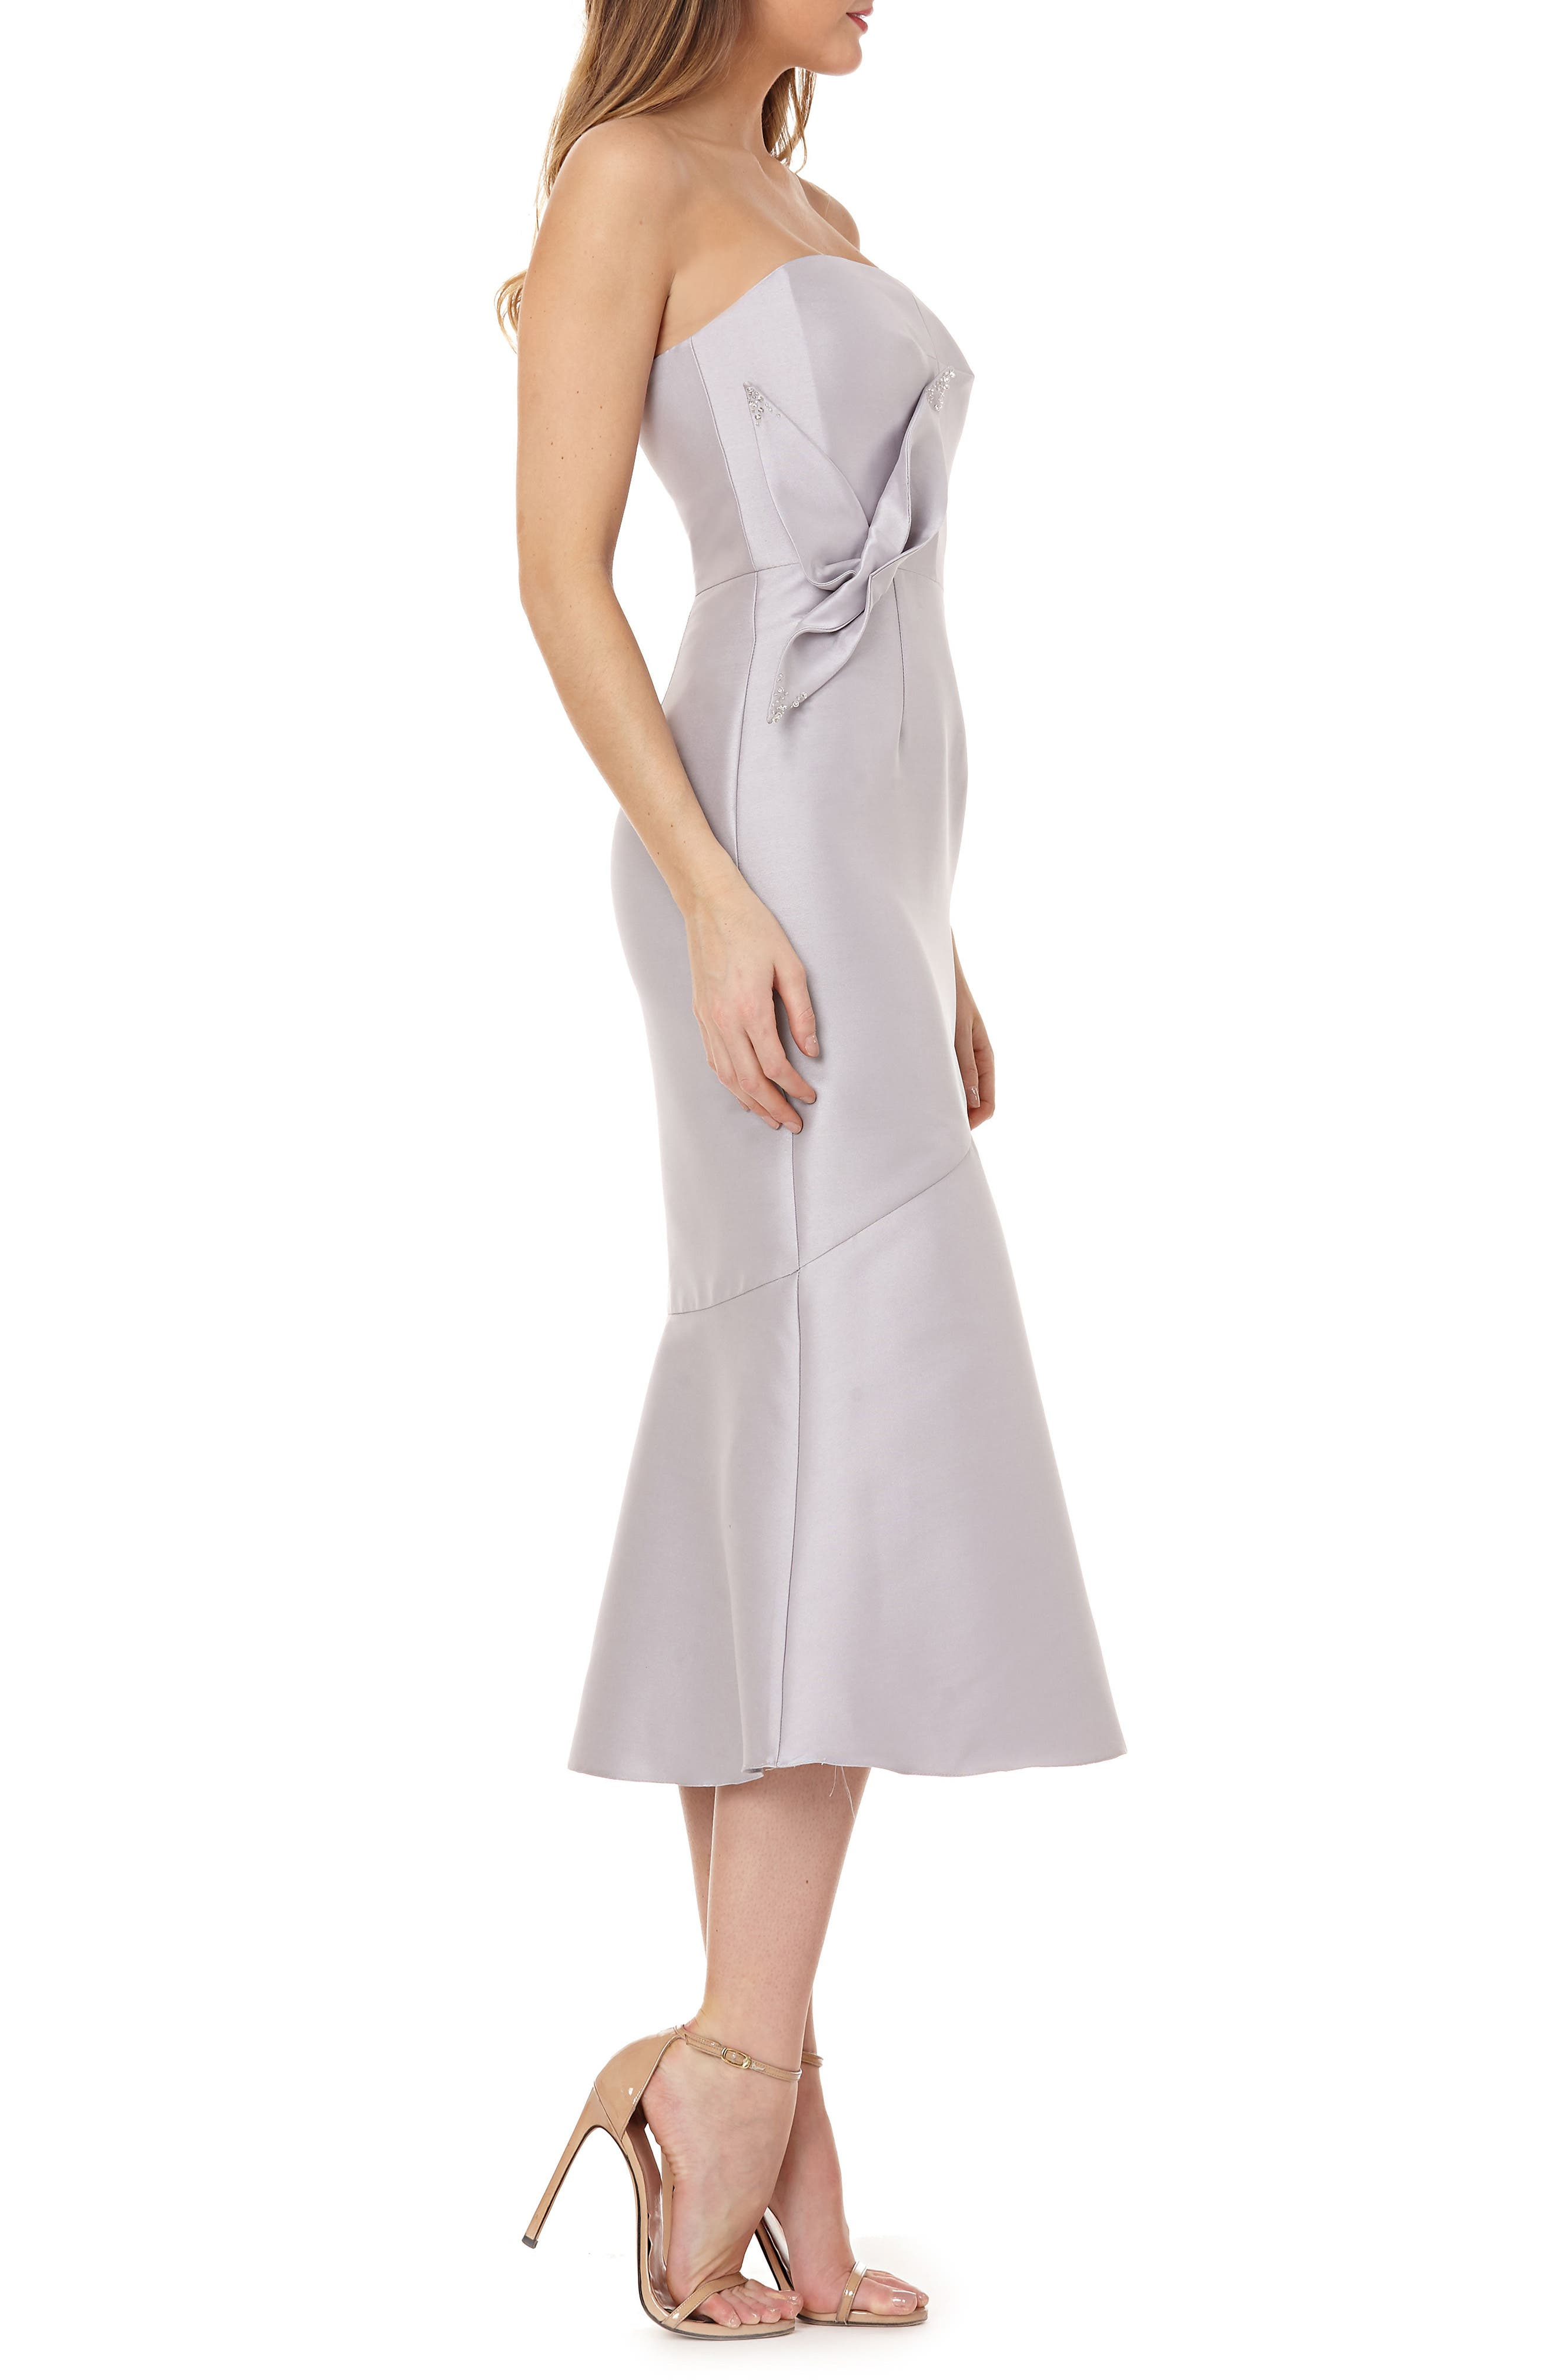 Strapless Satin Tea Length Dress,                             Alternate thumbnail 3, color,                             DOVE GREY